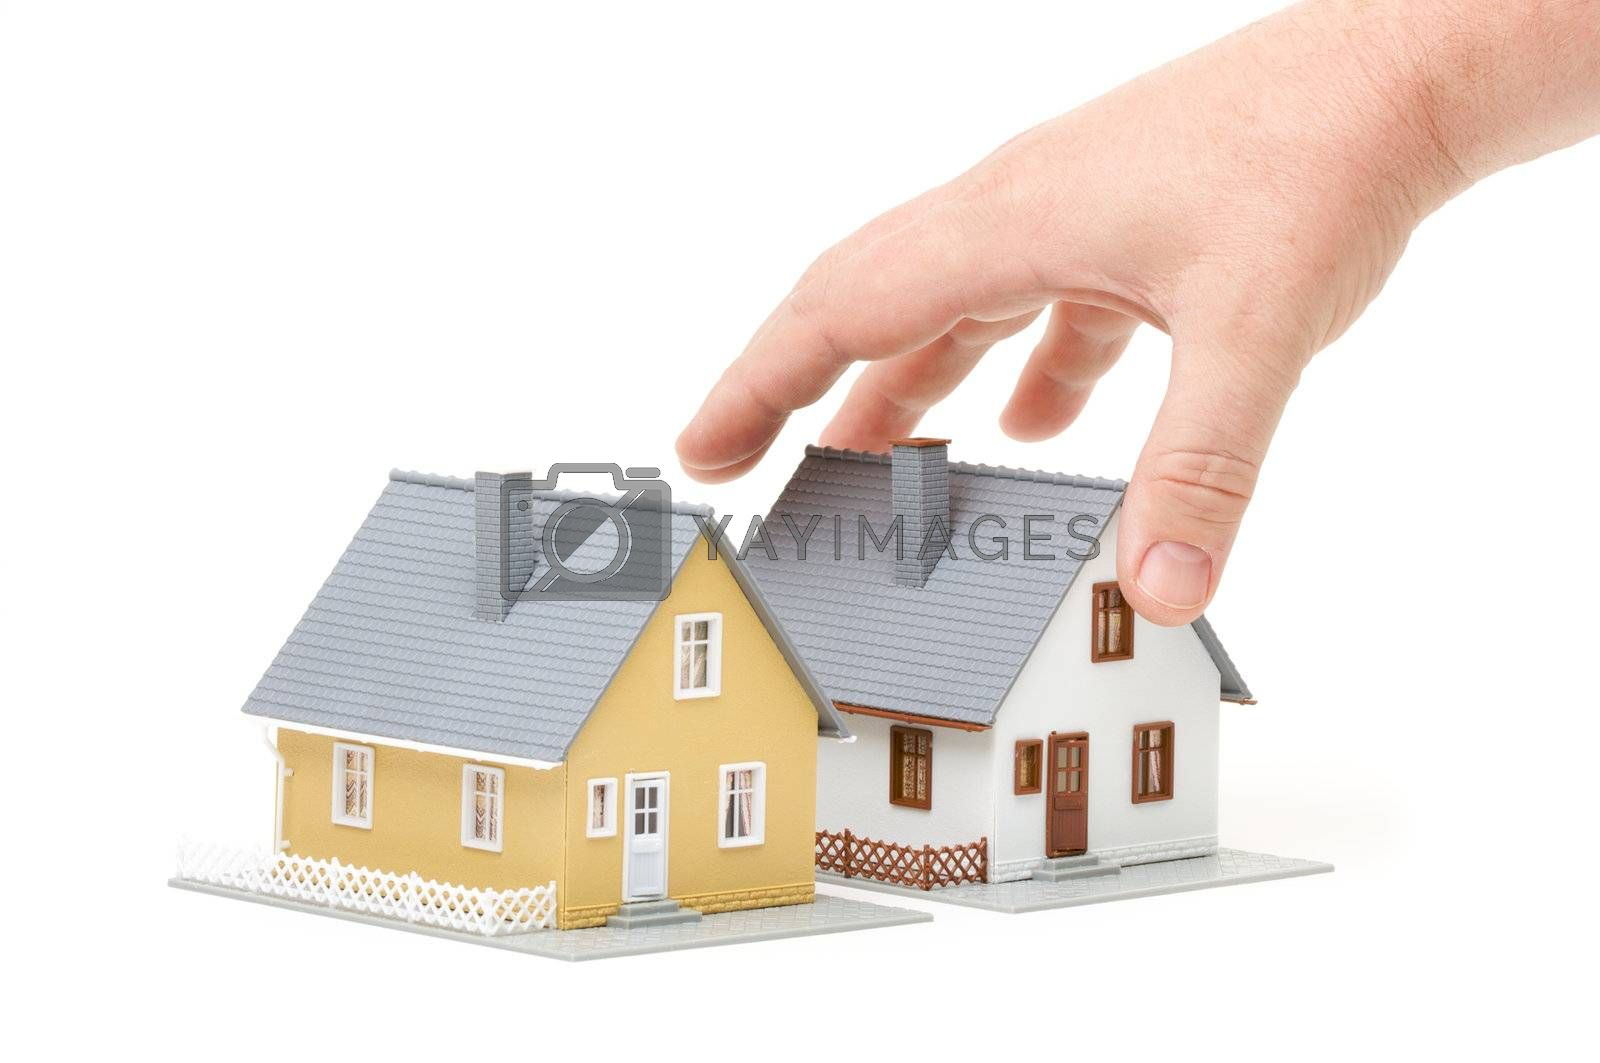 Male hand reaching for house isolated on a white background.